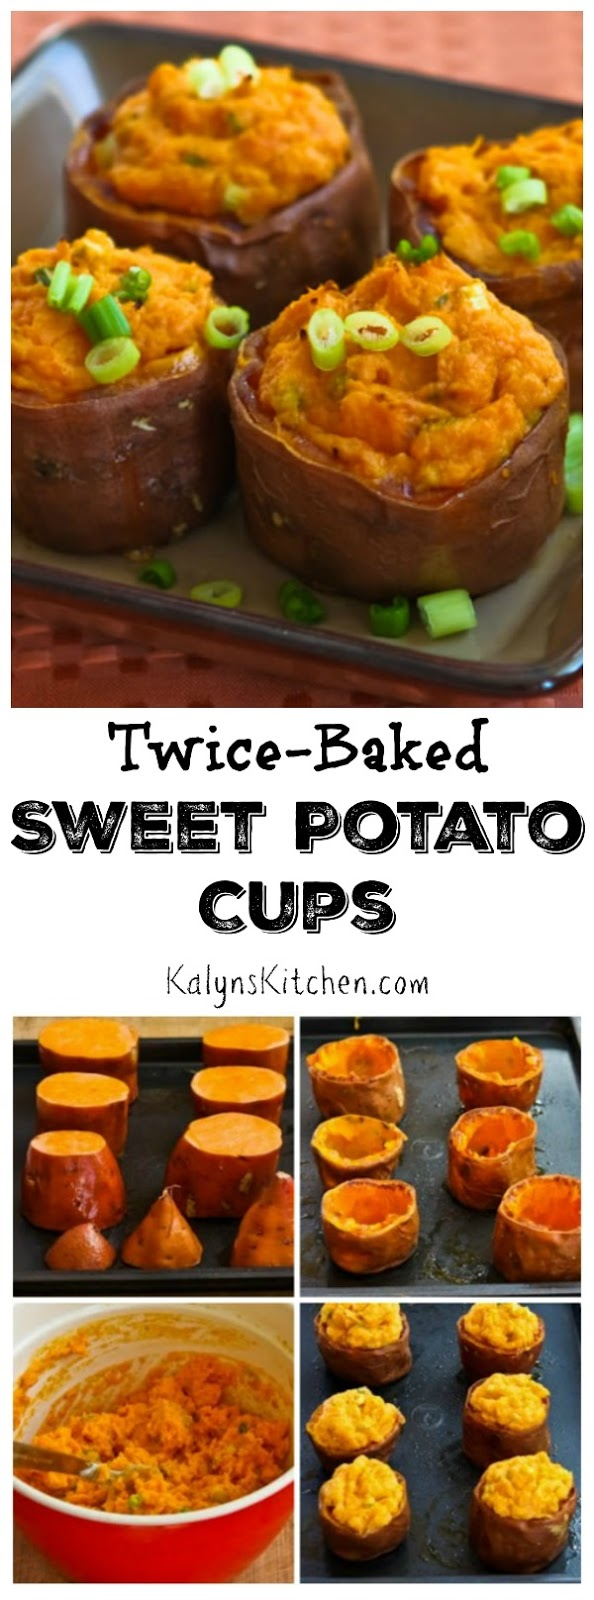 ... ®: Twice-Baked Sweet Potato Cups with Sour Cream, Chipotle, and Lime